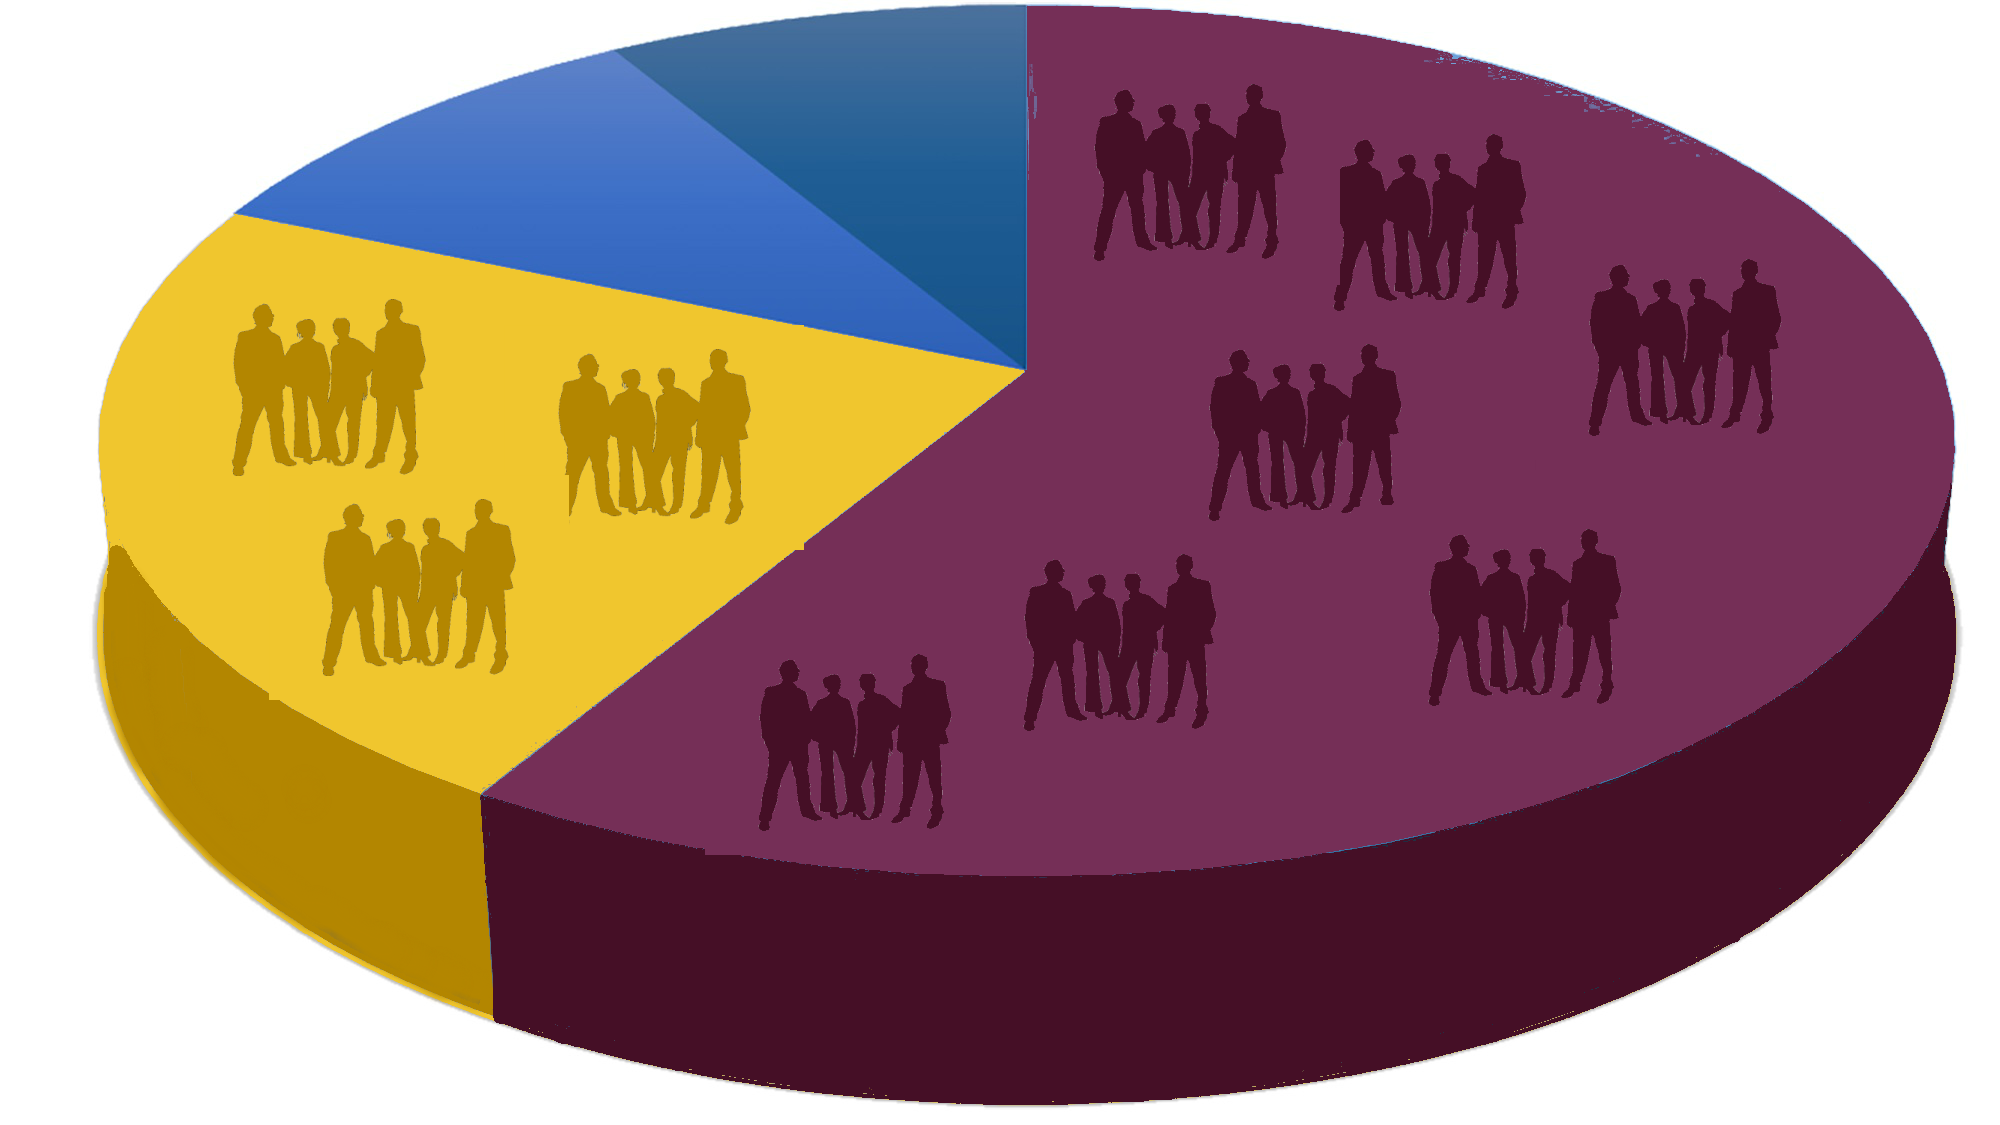 Pie chart depicting market share